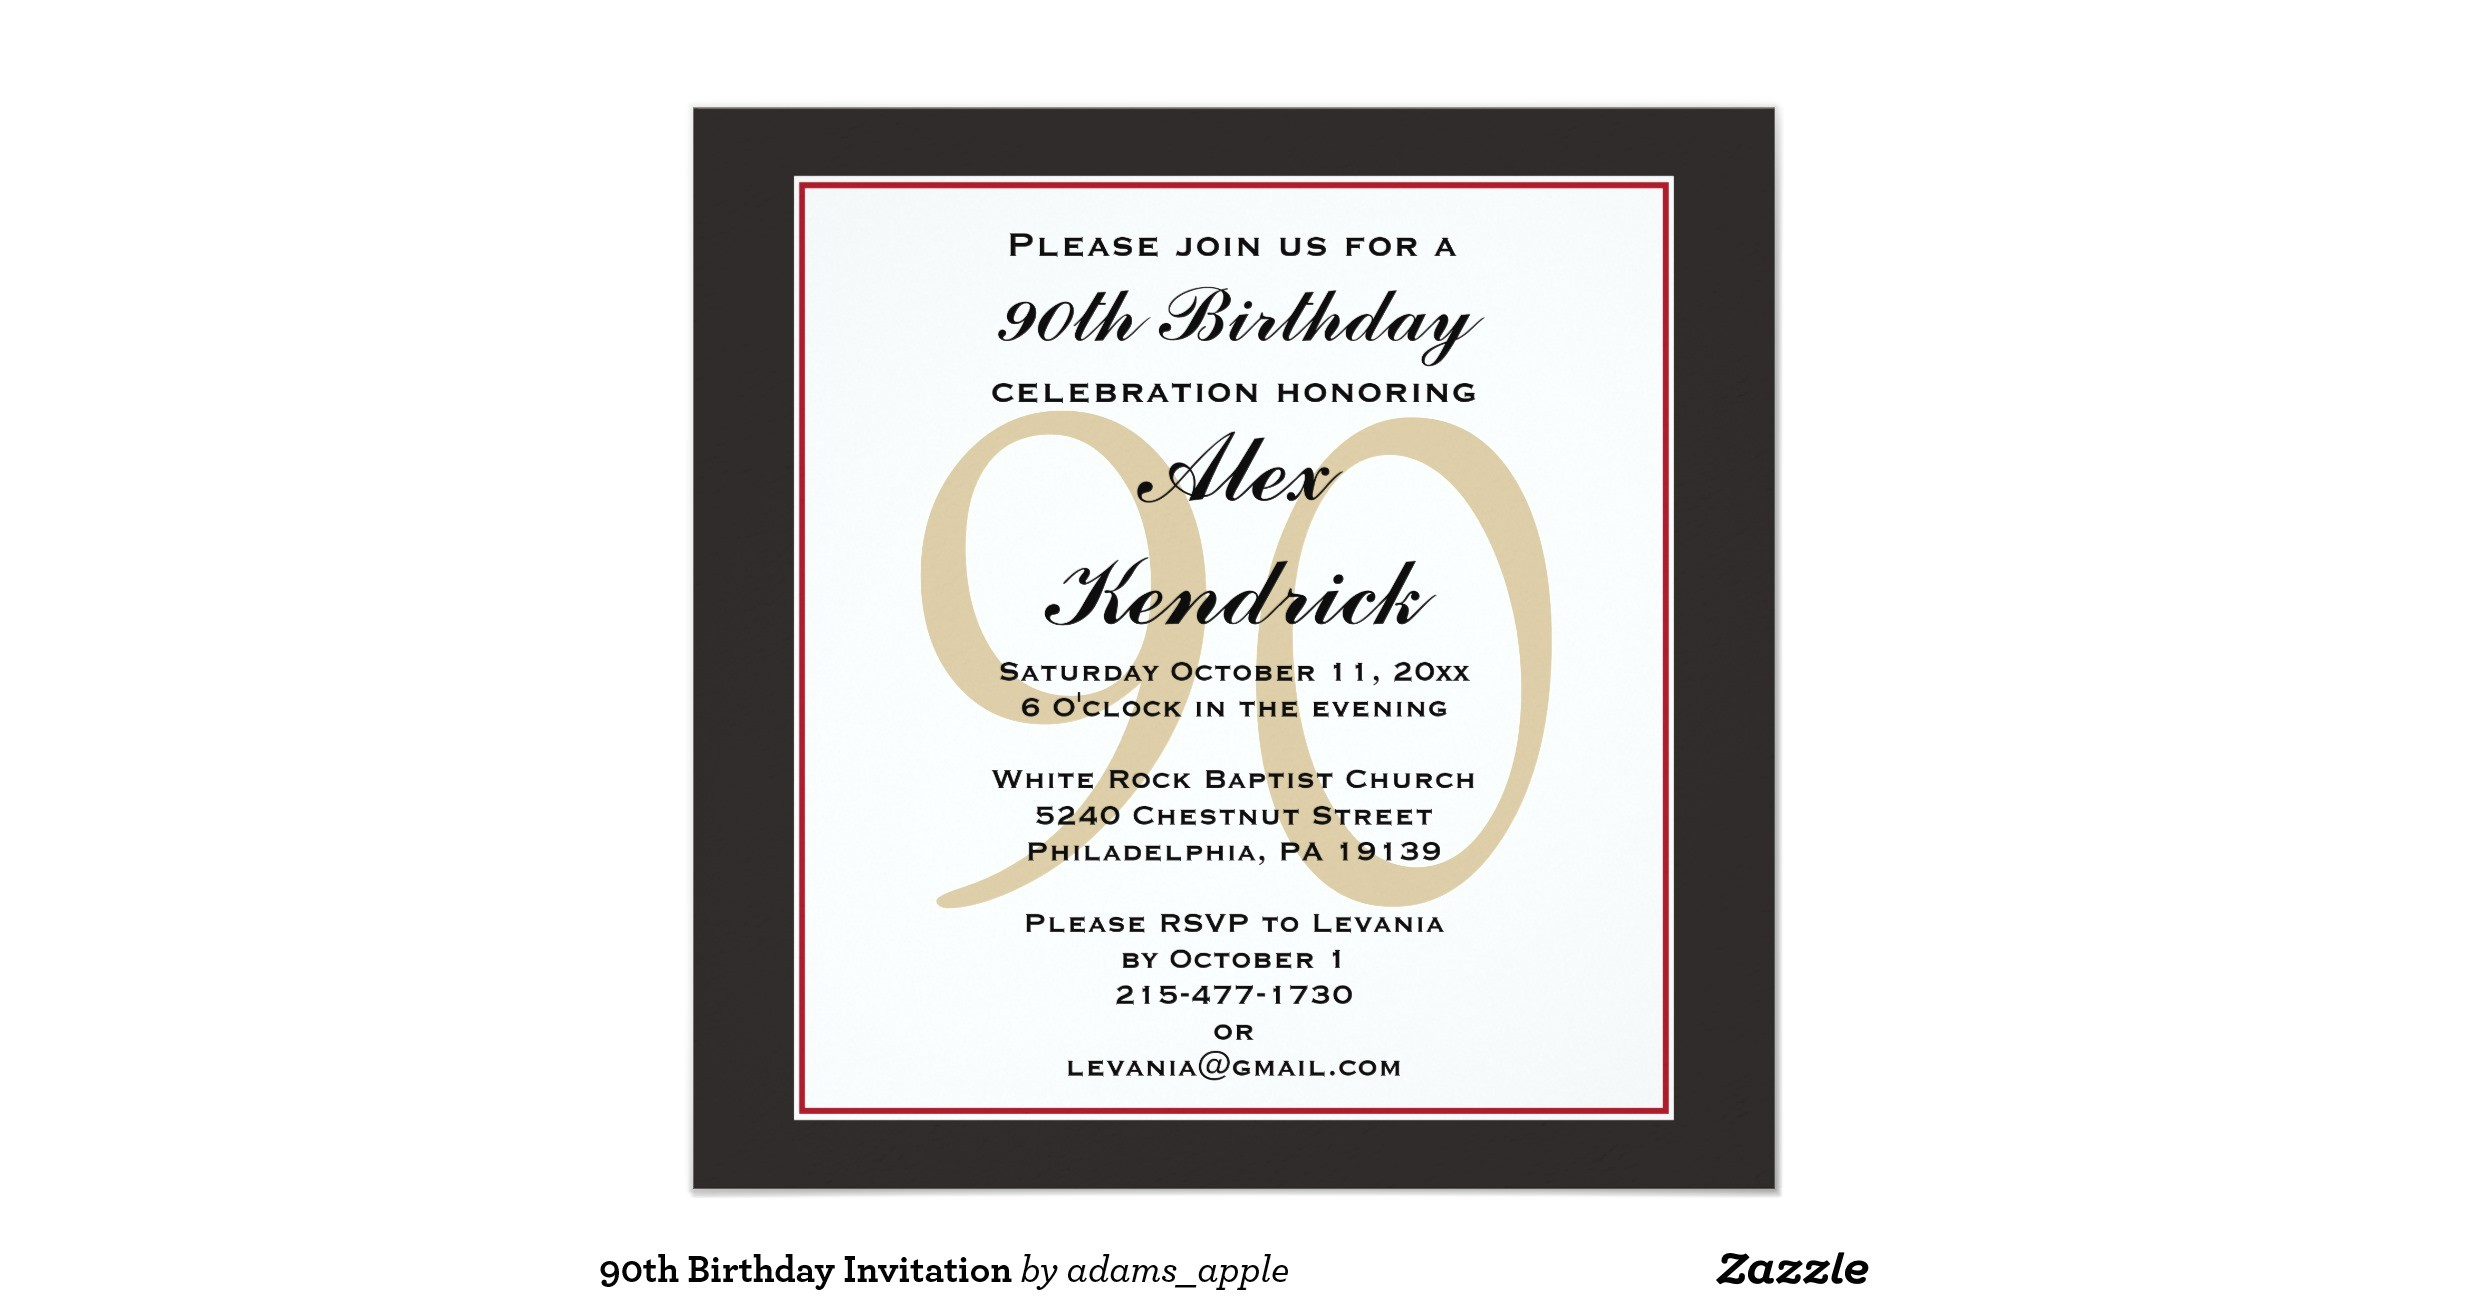 90th birthday invitation